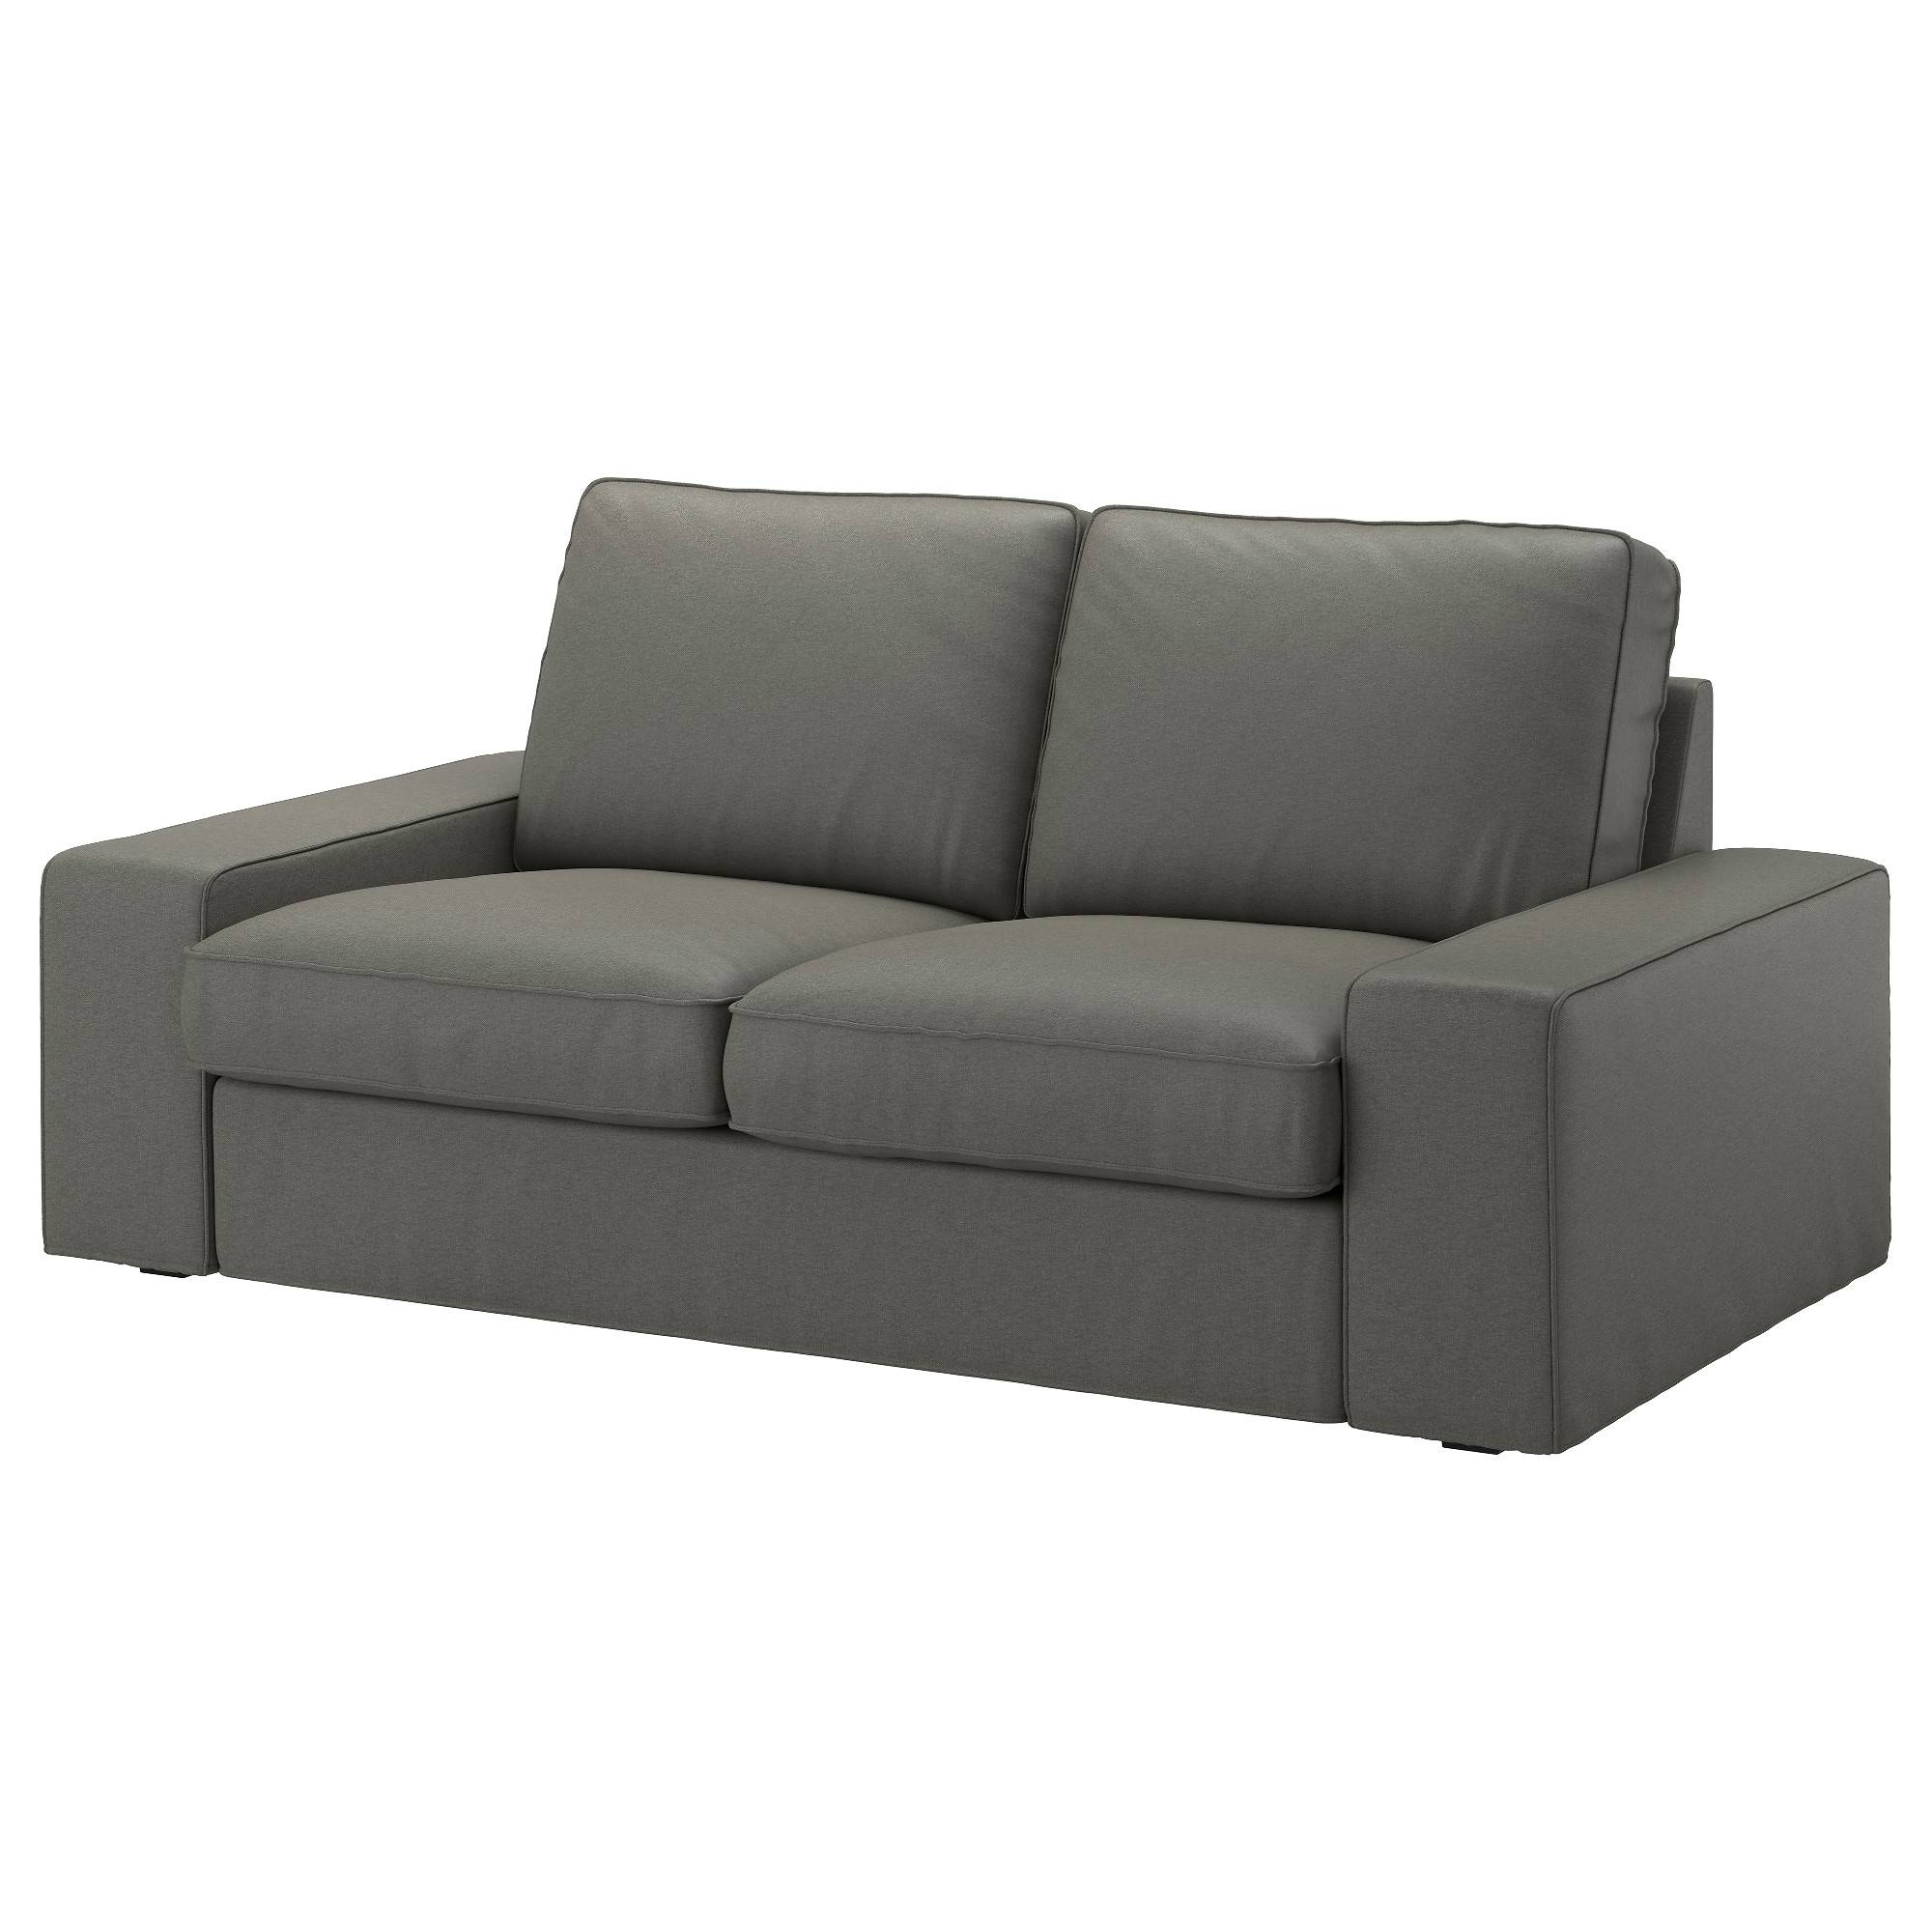 Kivik Loveseat - Borred Gray-Green - Ikea regarding Ikea Single Sofa Beds (Image 17 of 30)